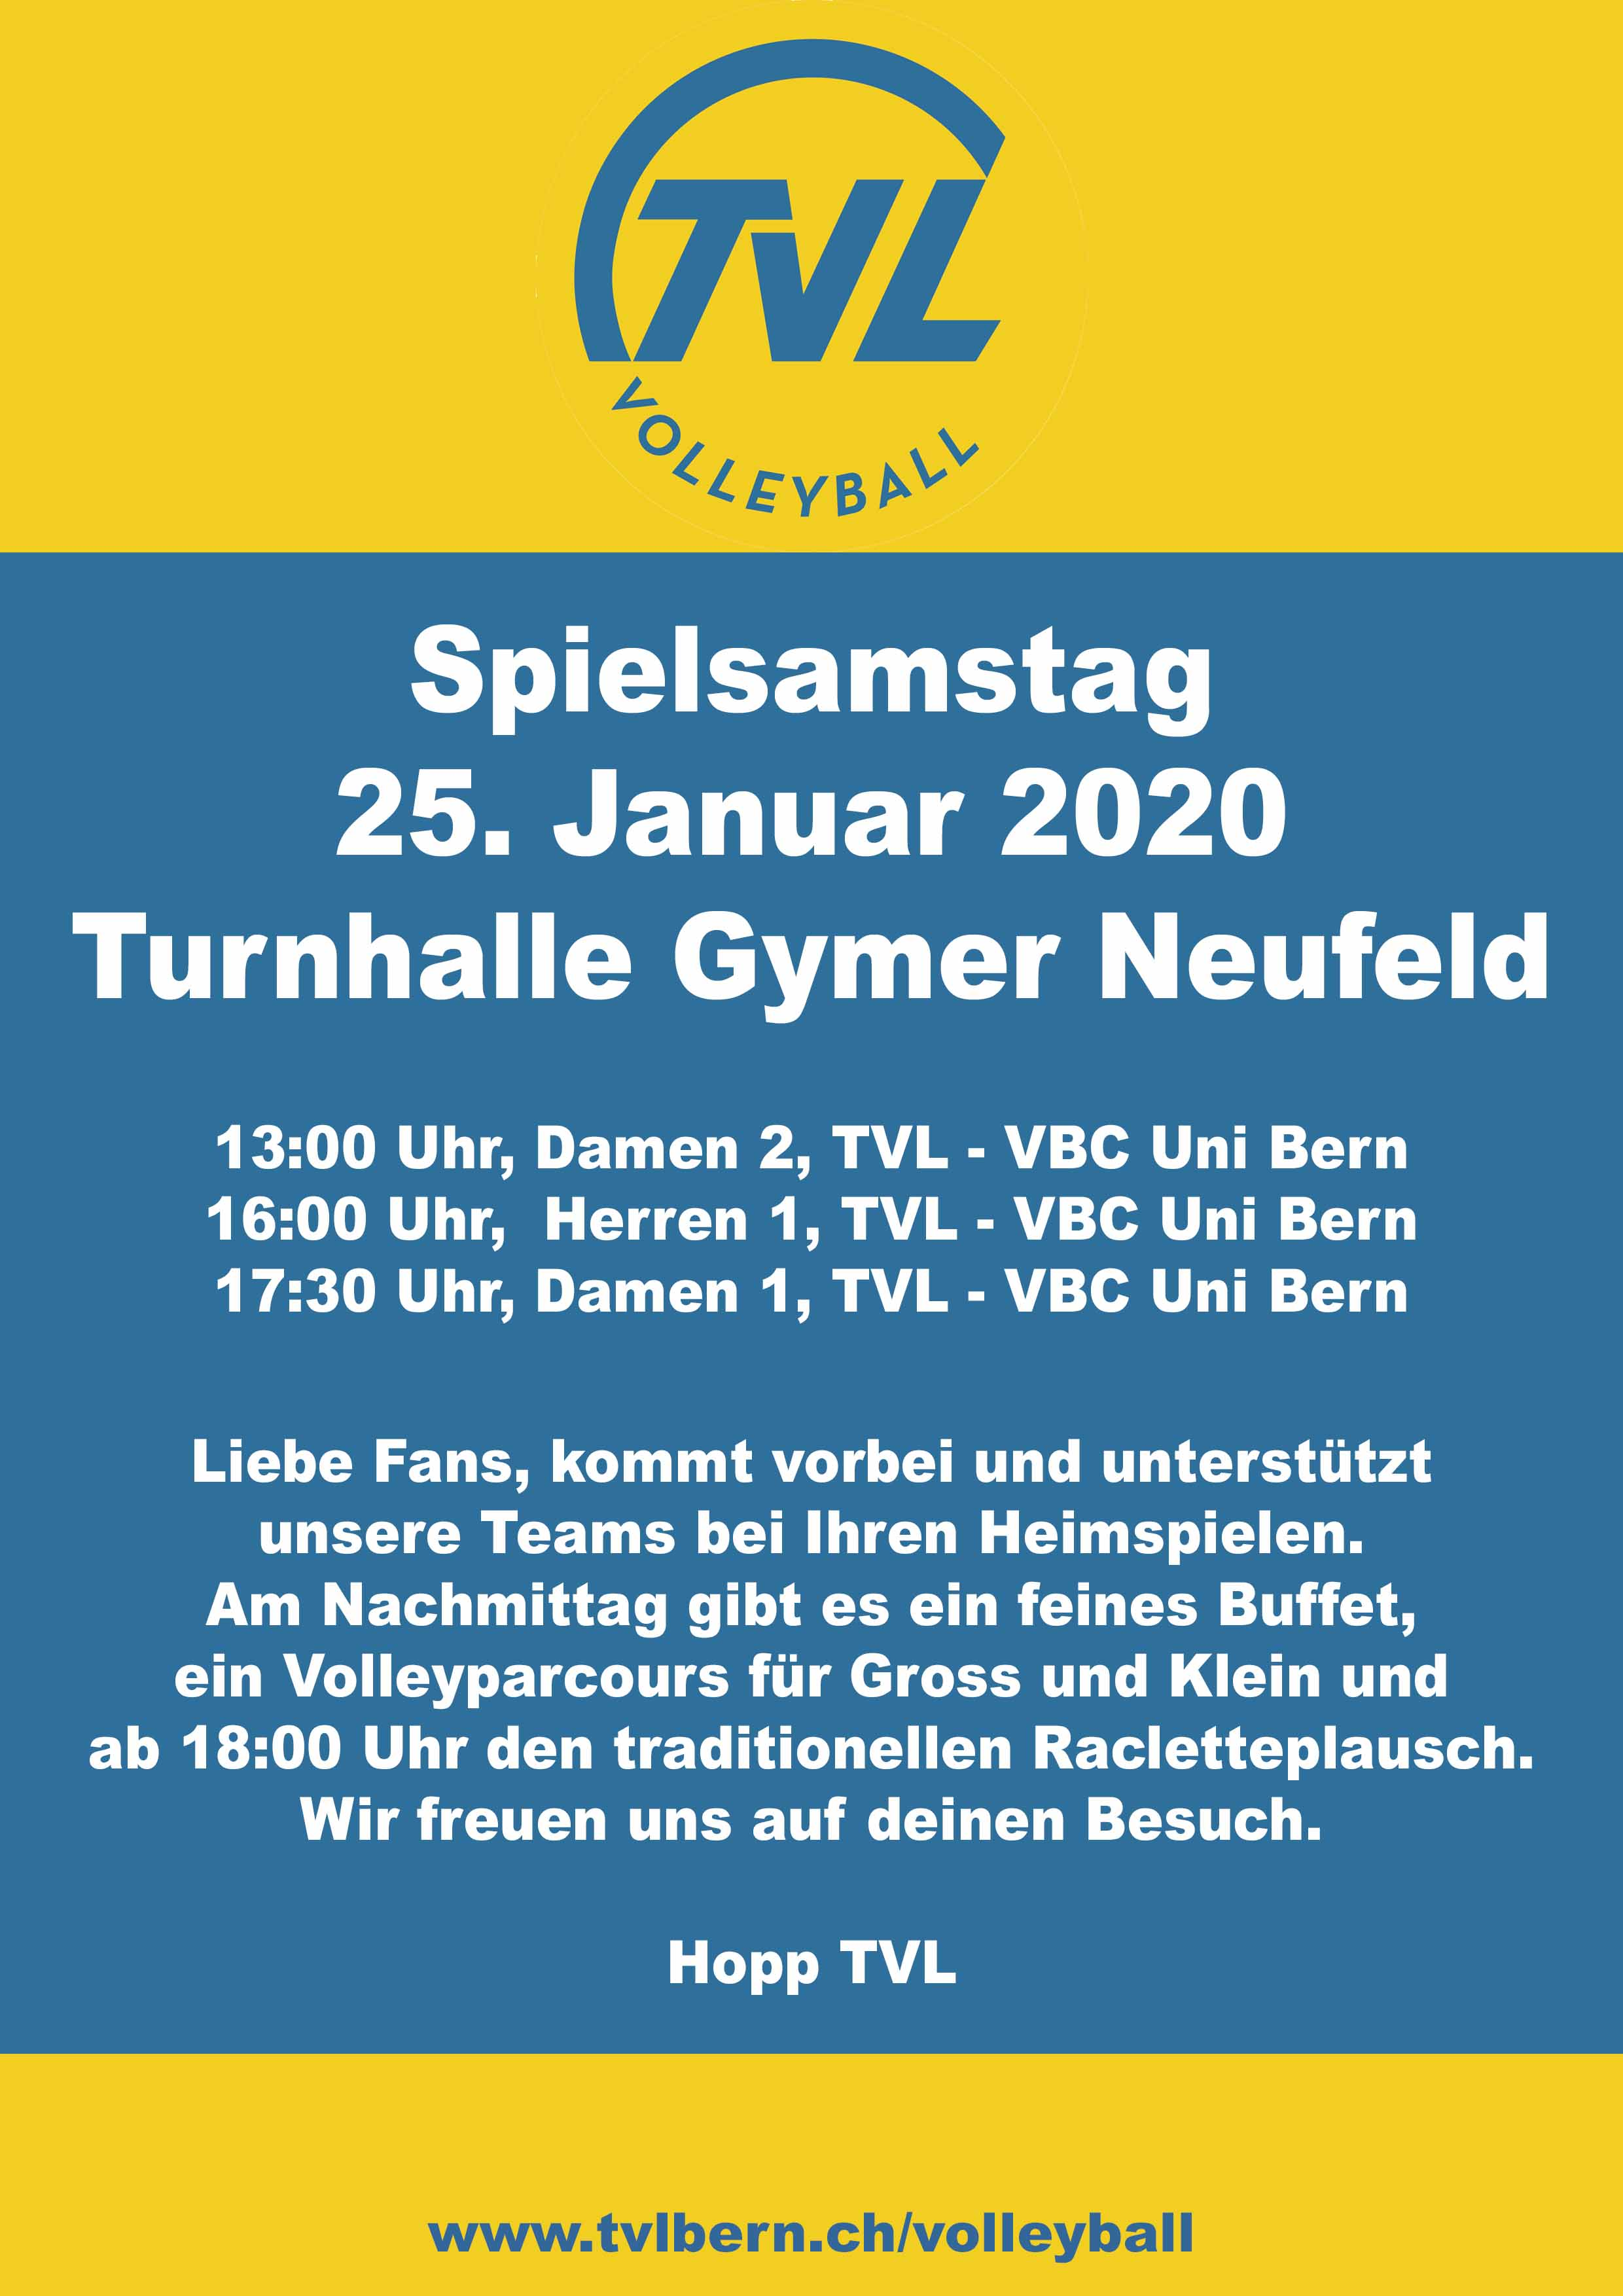 Spielsamstag 191217 1